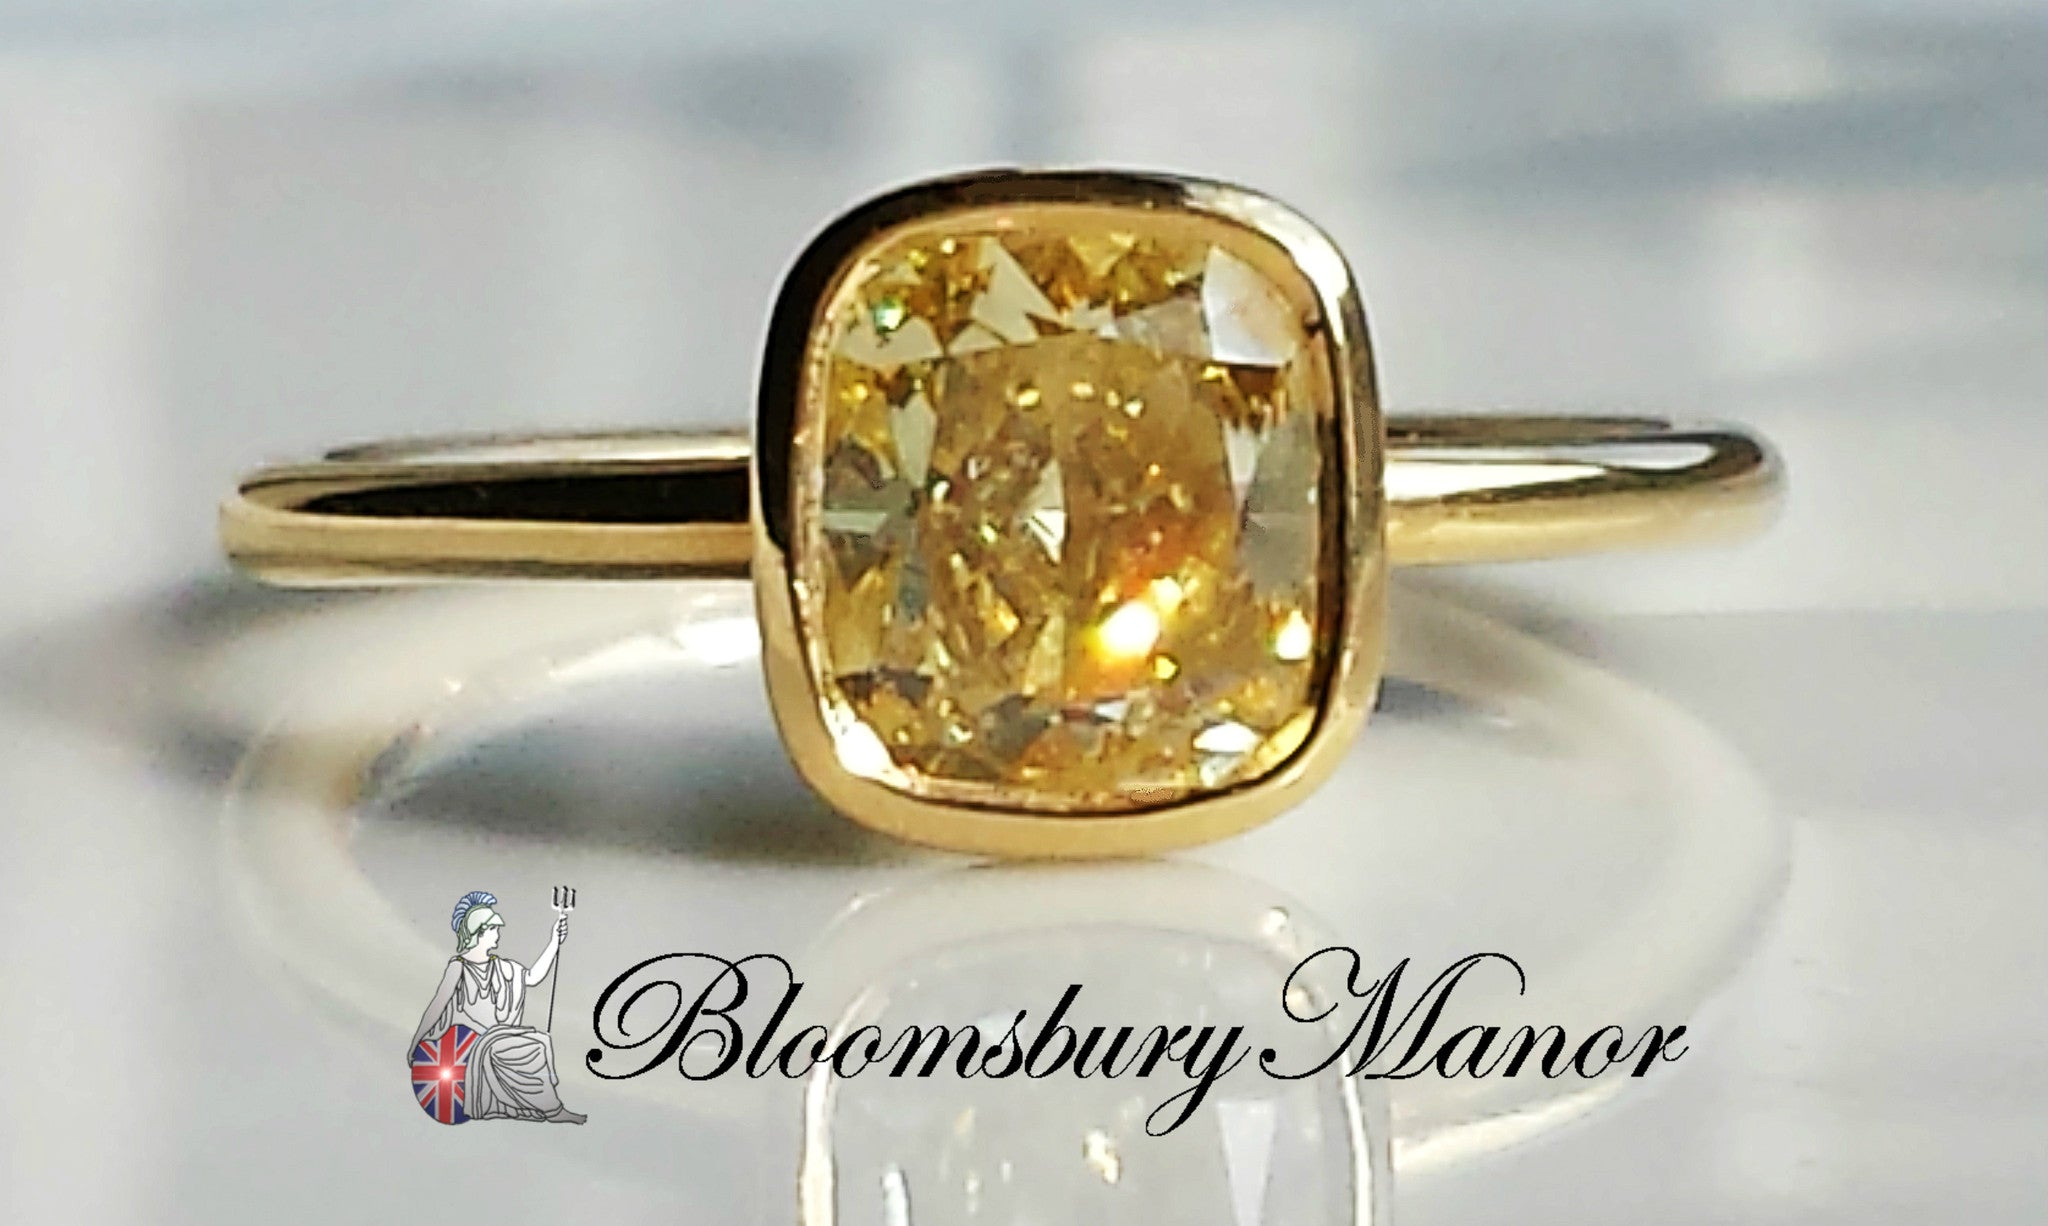 Tiffany Co 1 40ct Fancy Yellow Cushion Cut Diamond Engagement Ring Fi Vs1